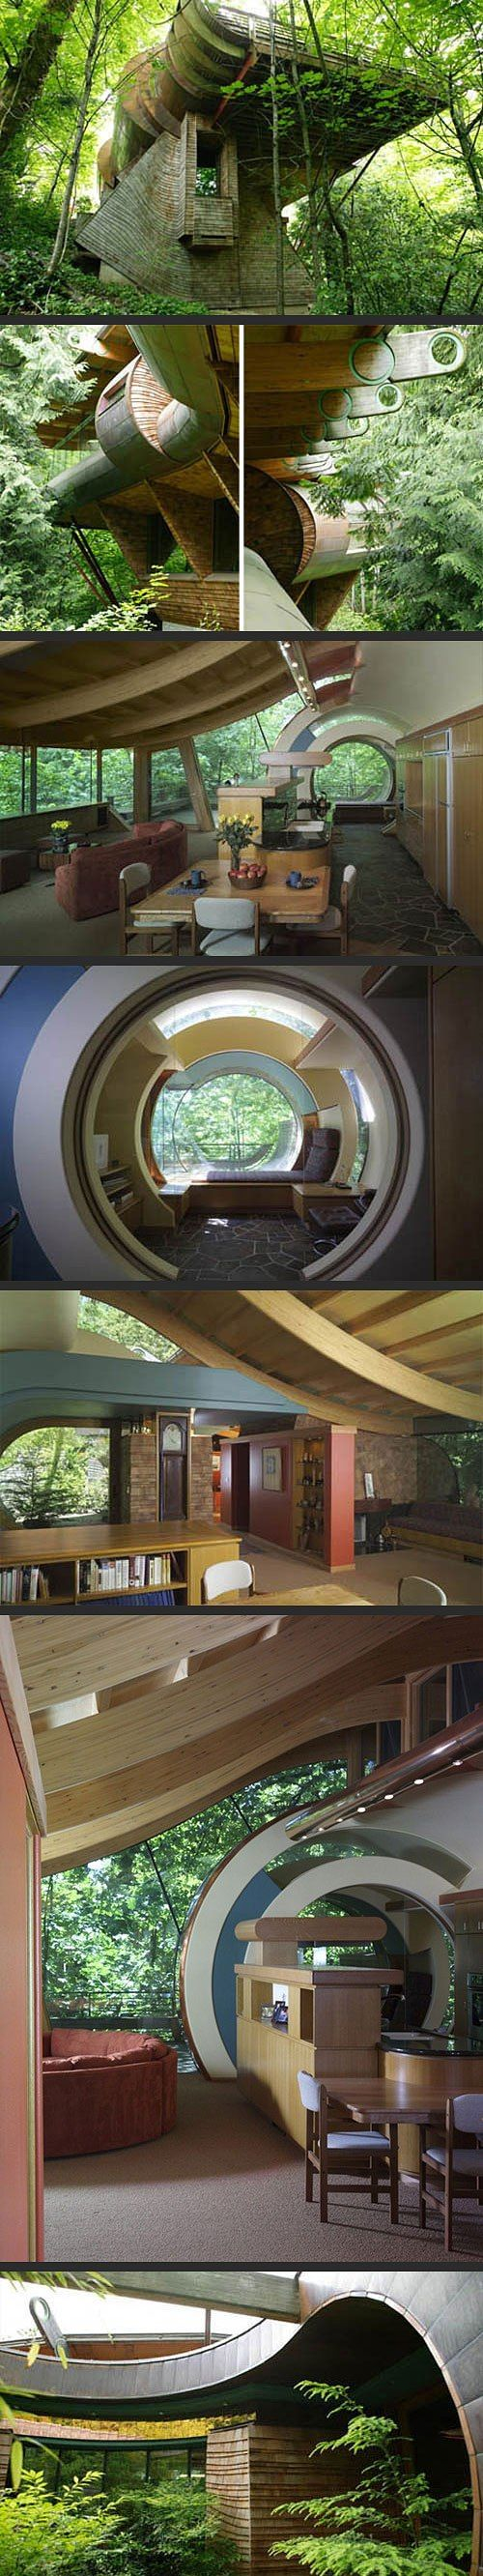 Secret House In The Woods - I could live here